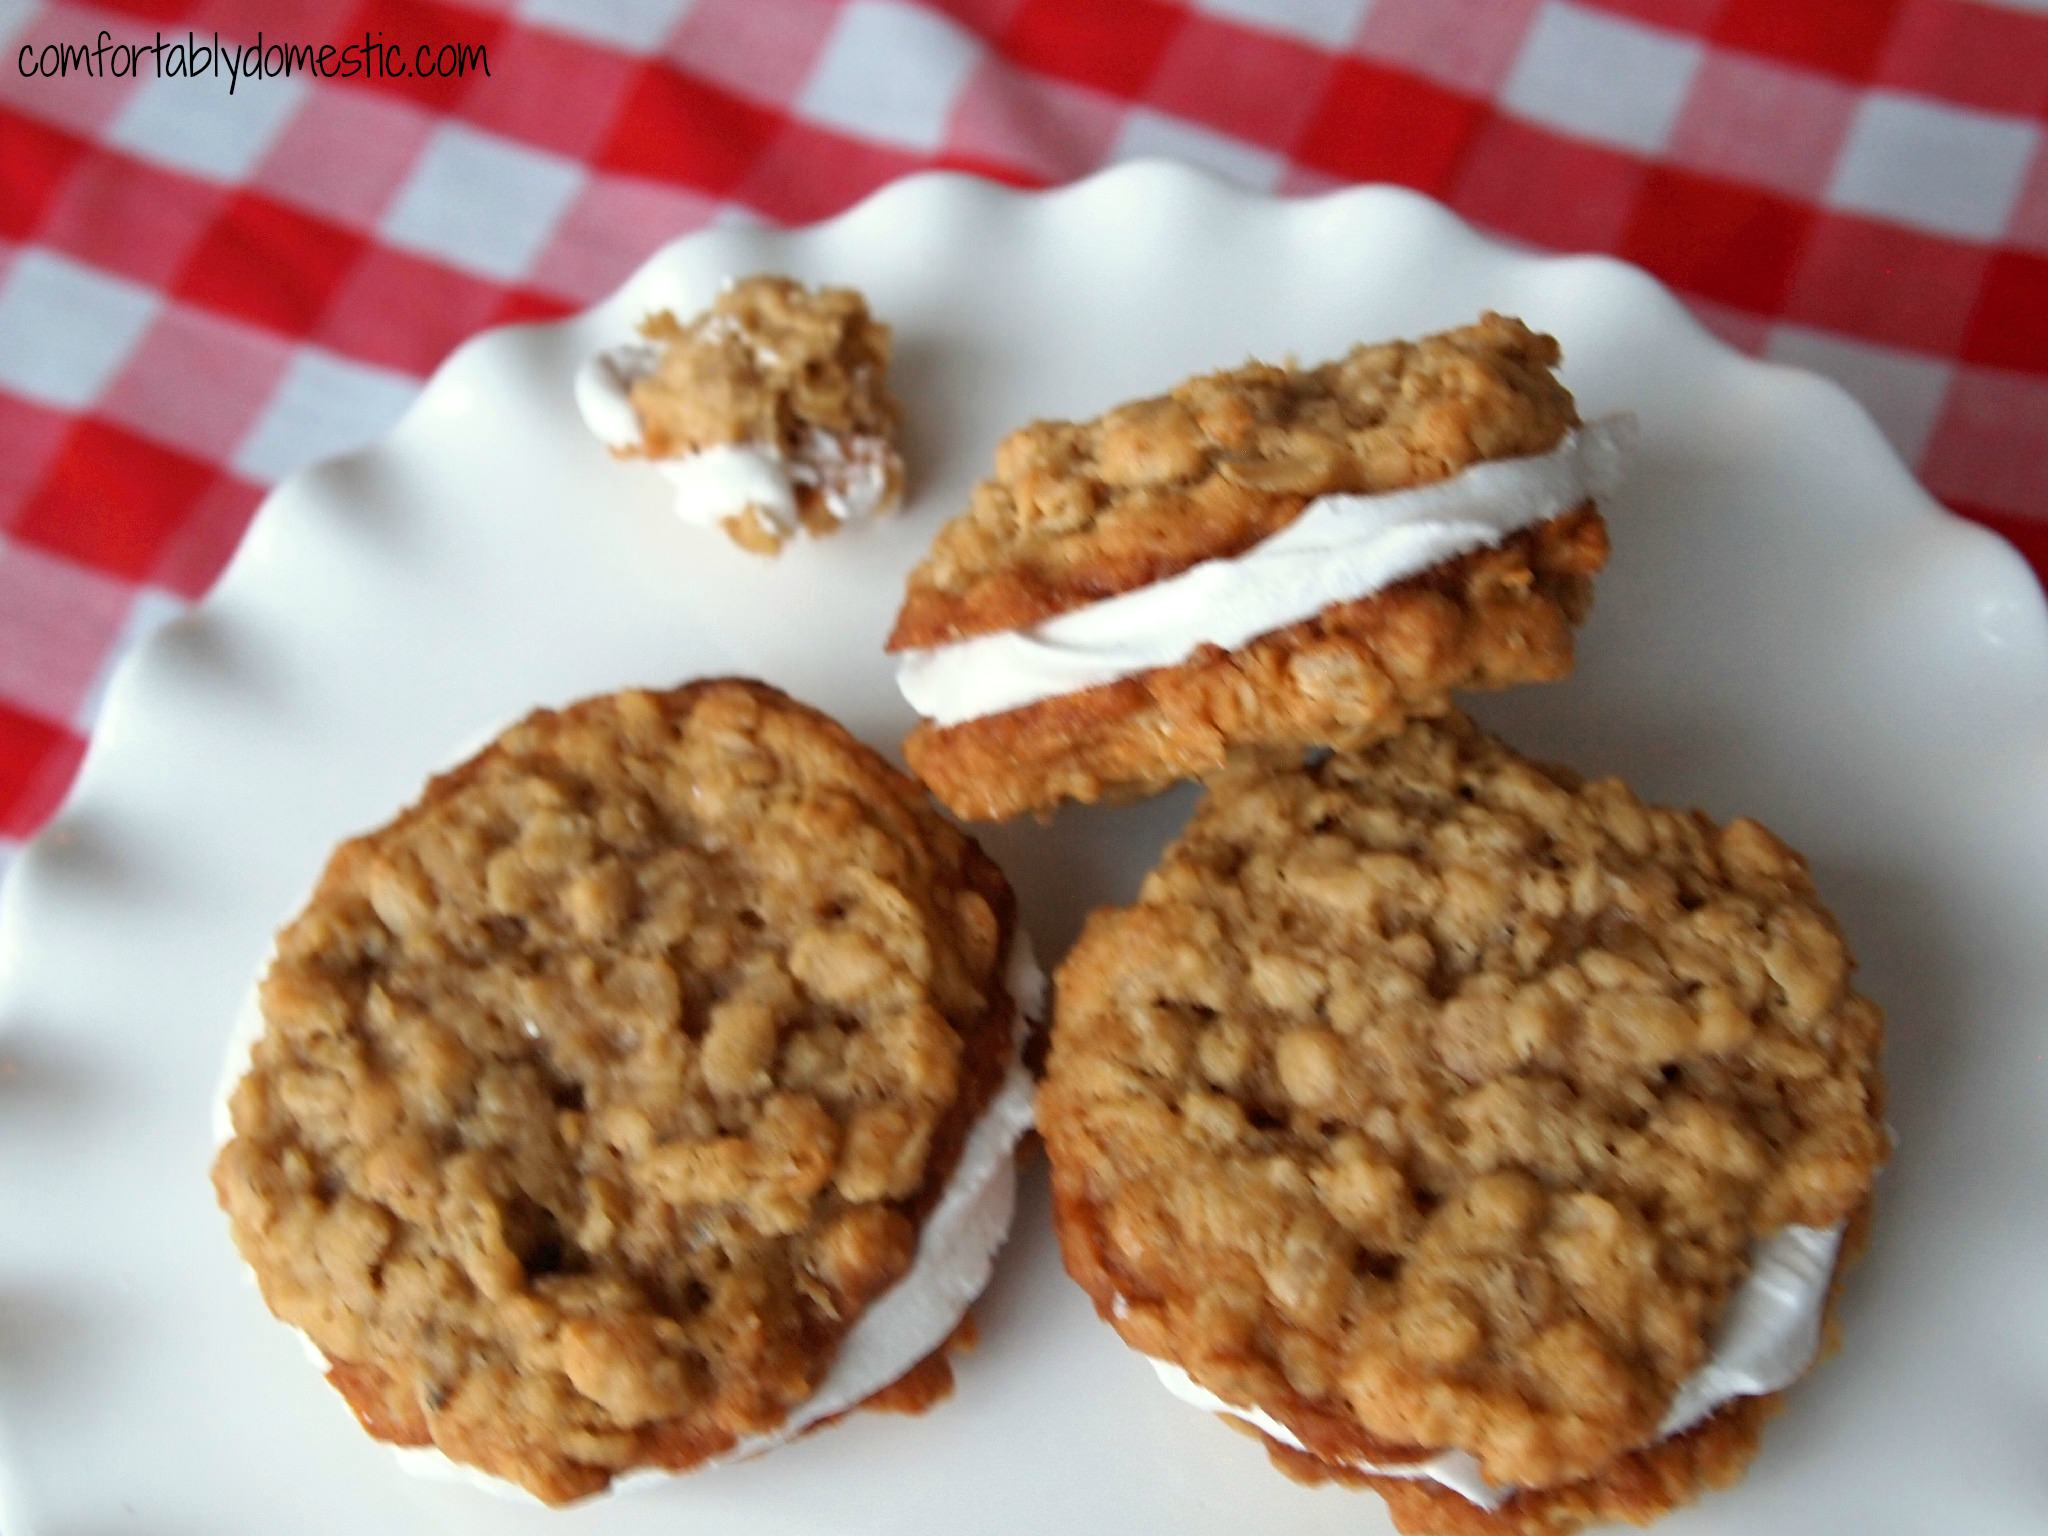 Homemade Oatmeal Marshmallow Cream Pies